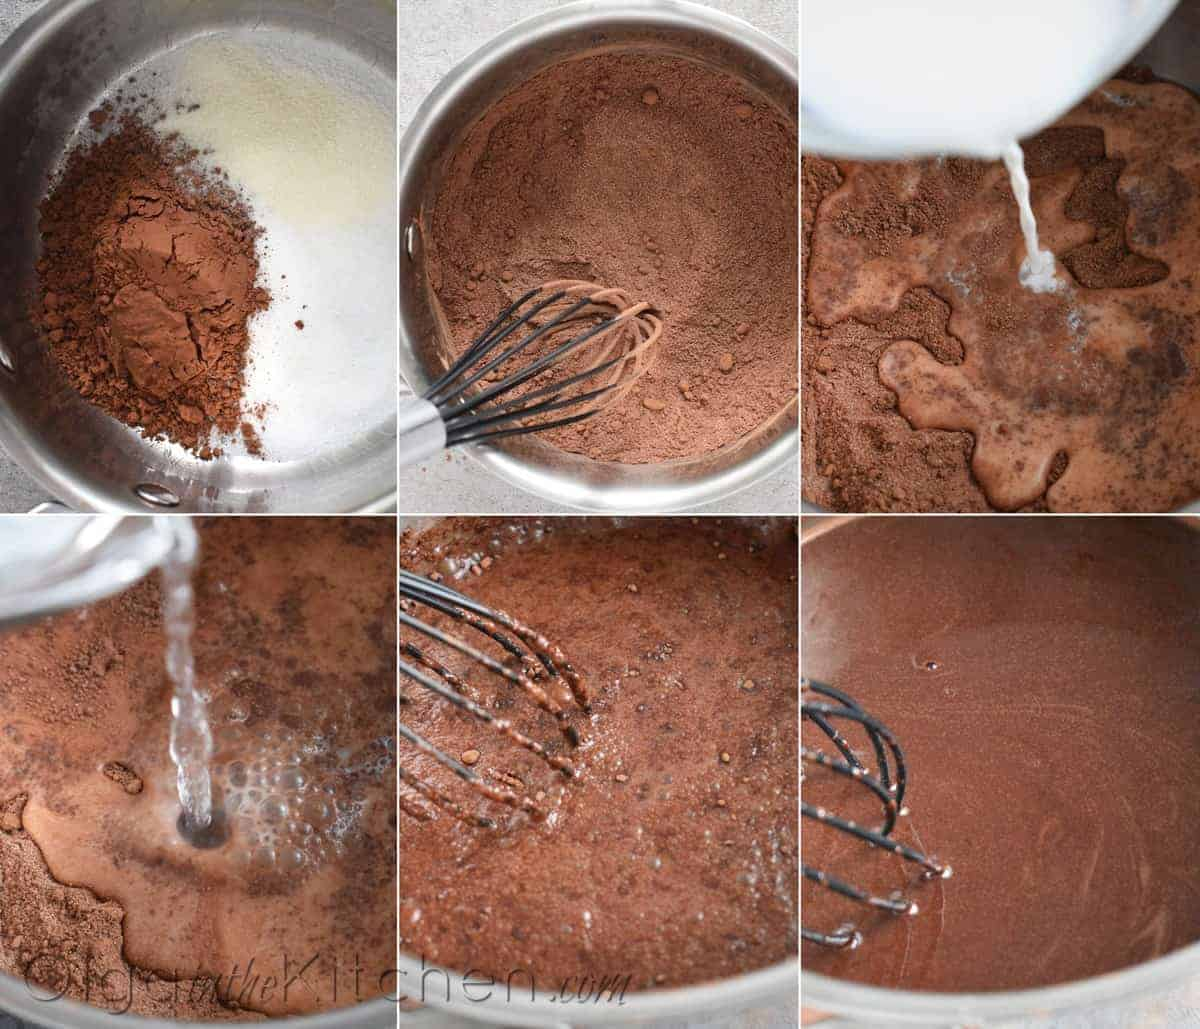 How to make chocolate jello